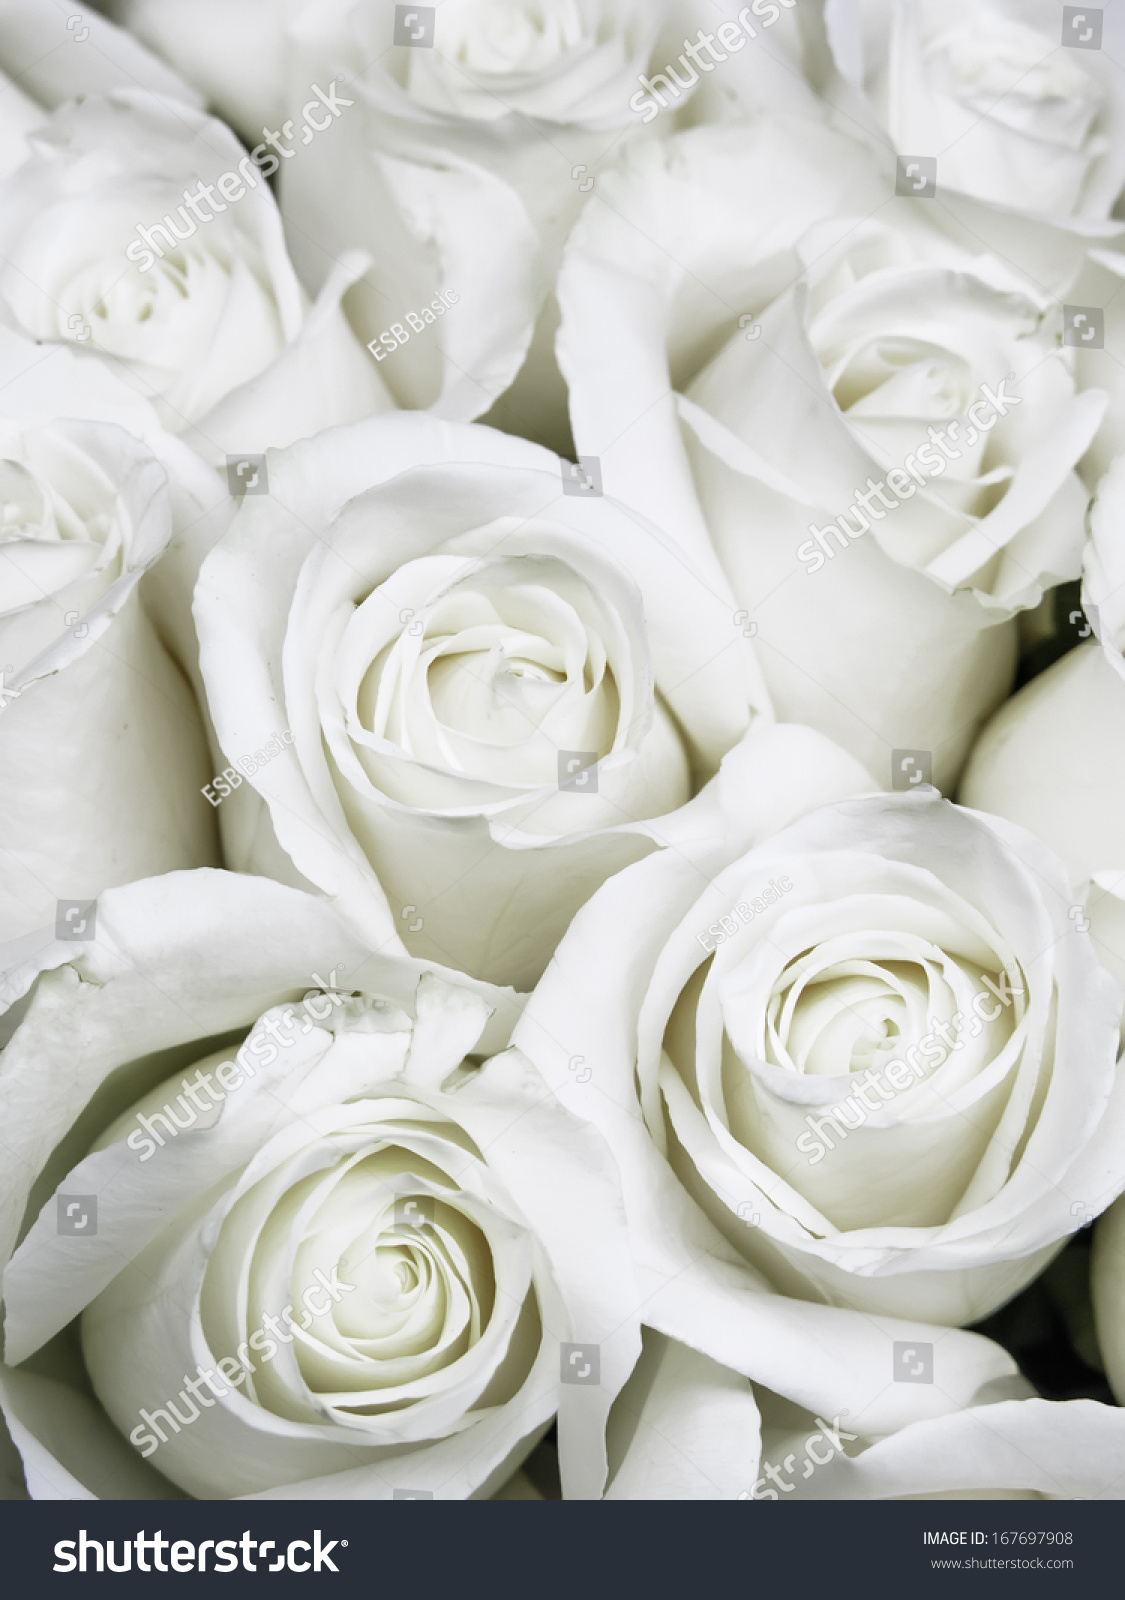 Bouquet Of Small White Roses Shortly Before They Open Into Full